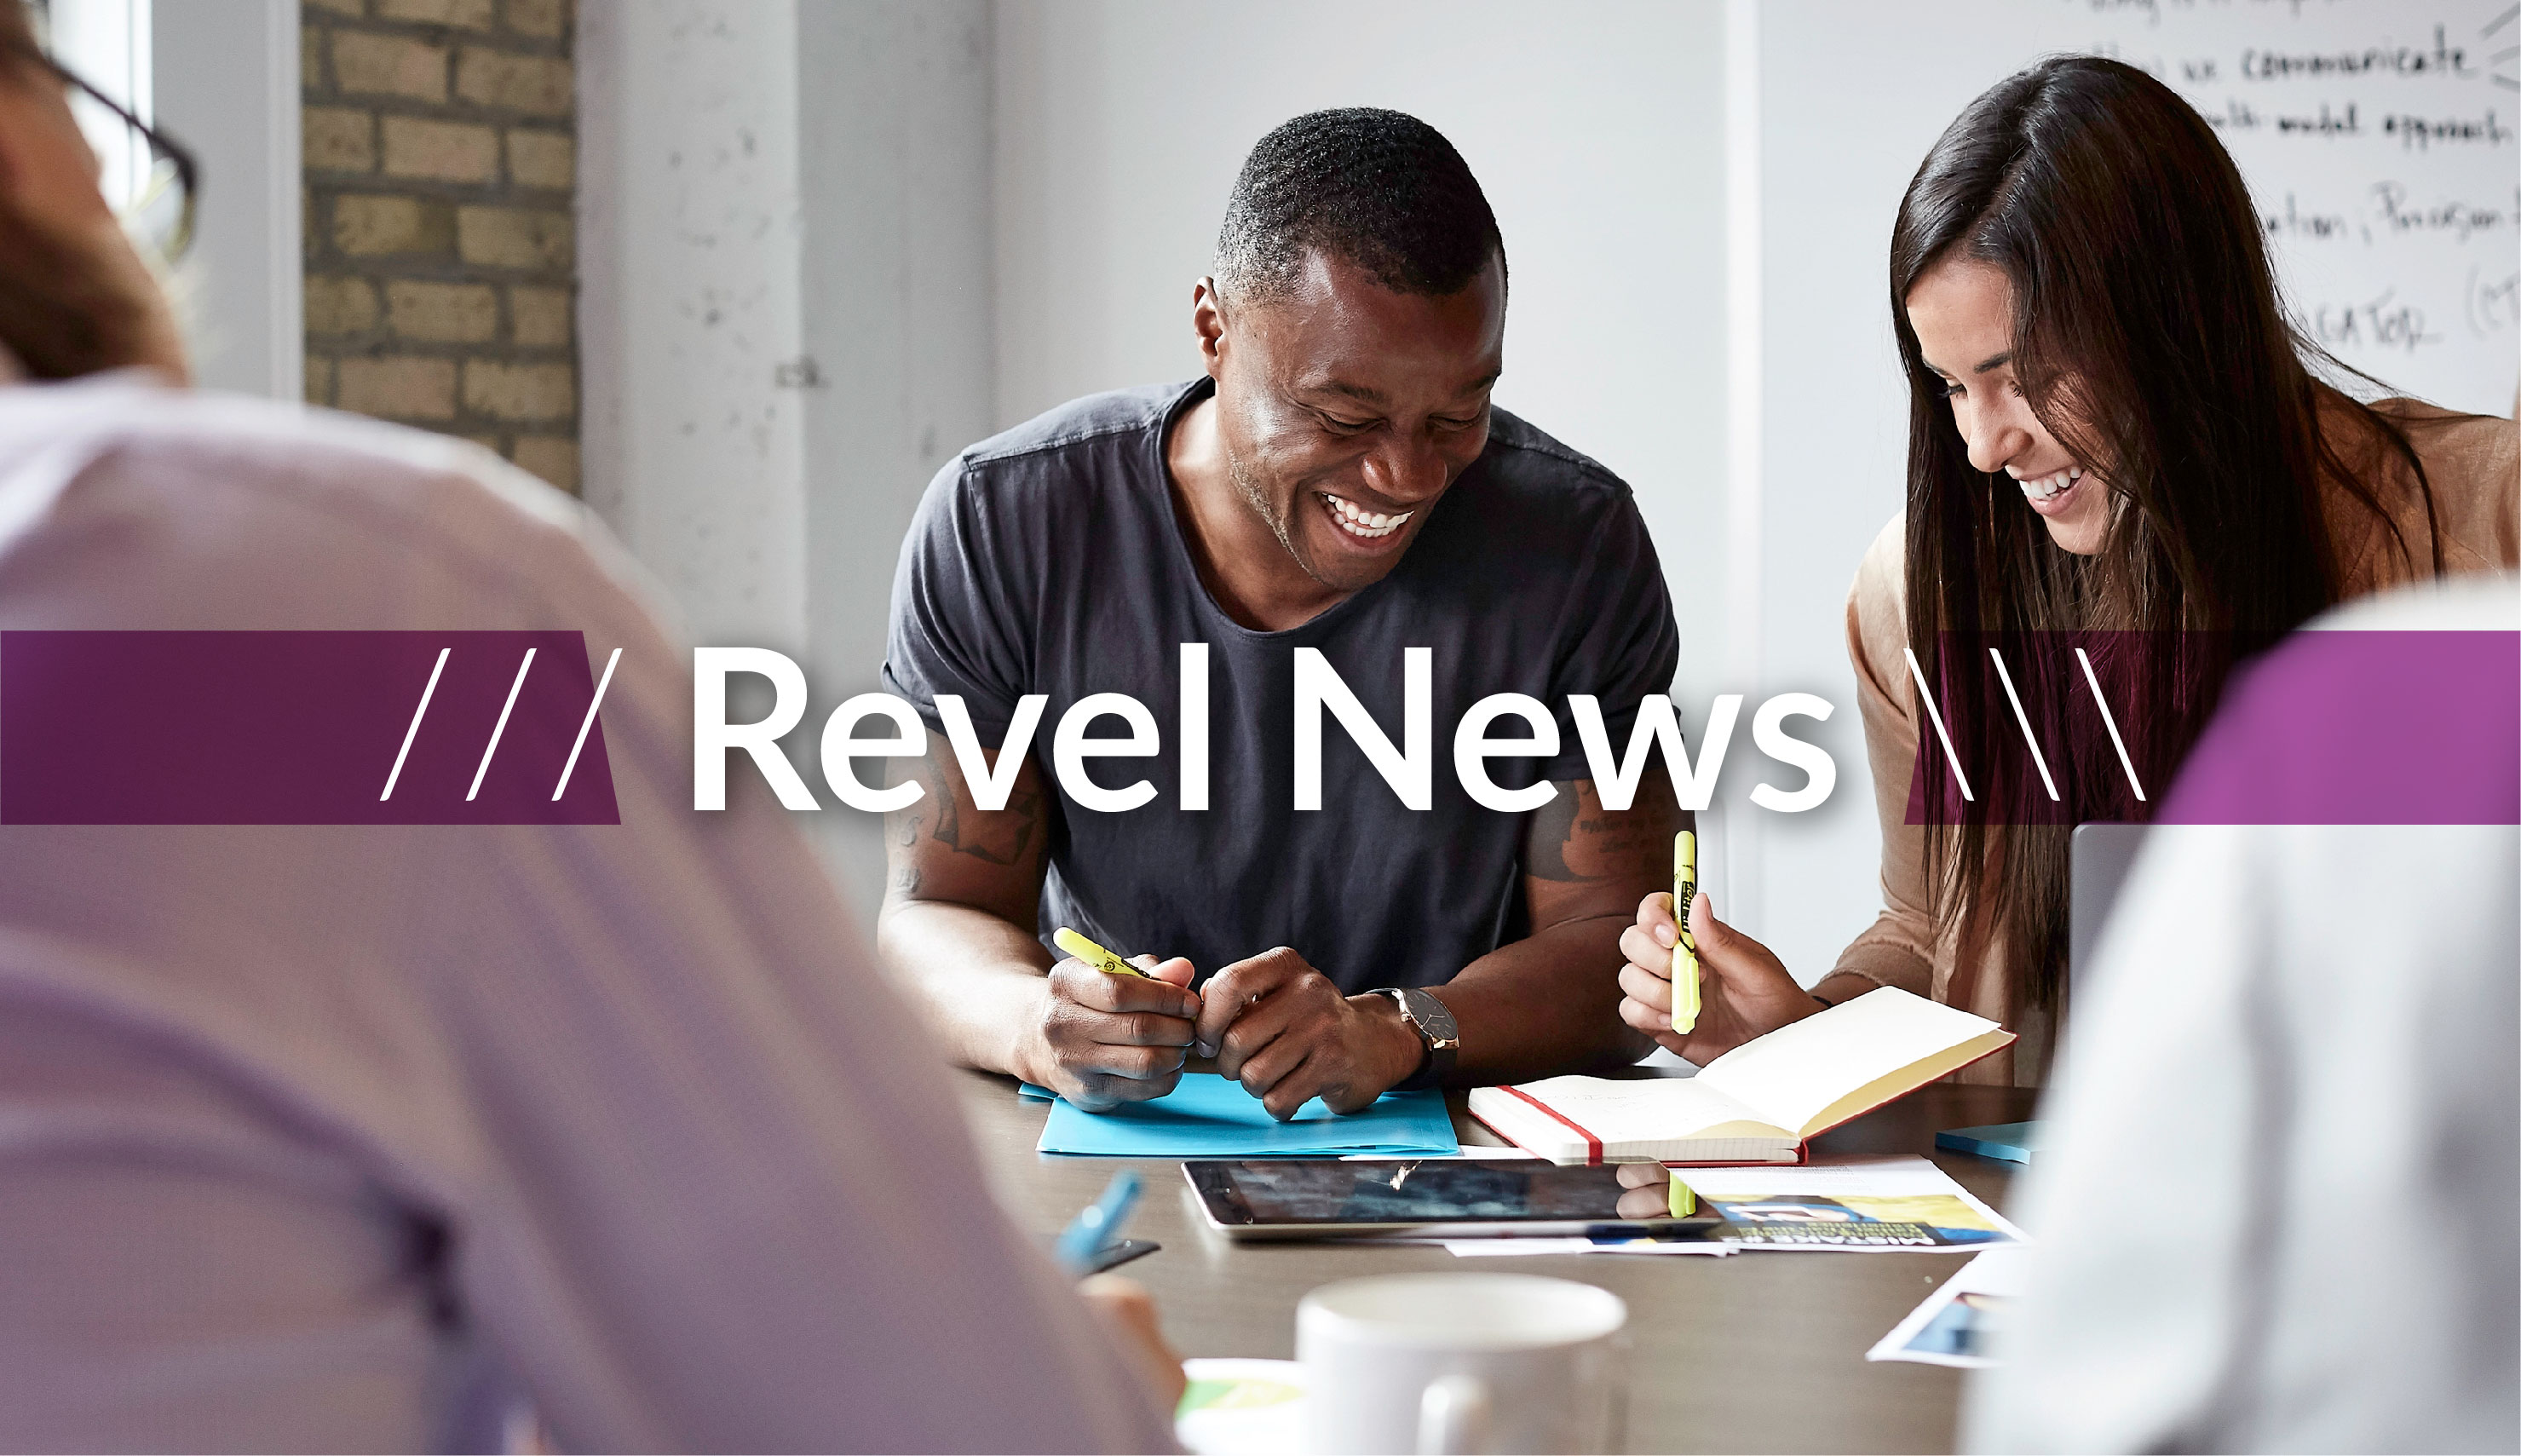 Revel News Alert: Revel Announces Three Additions to Leadership Team